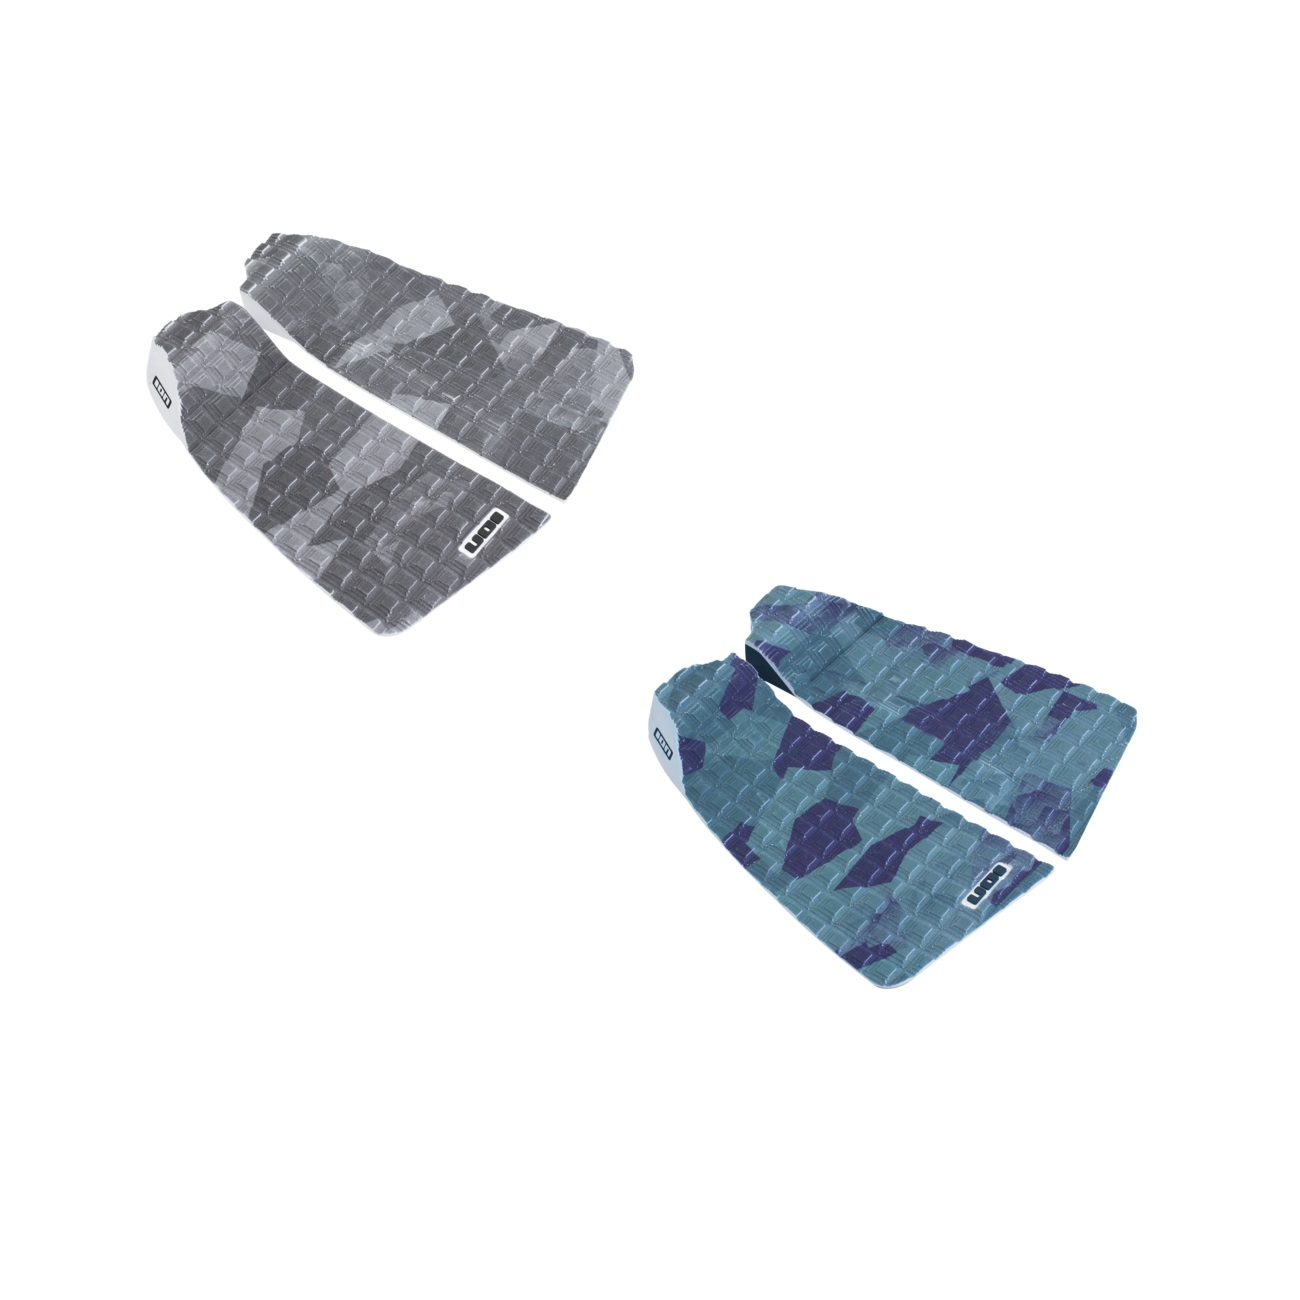 Surfboard Pads Camouflage 2 psc